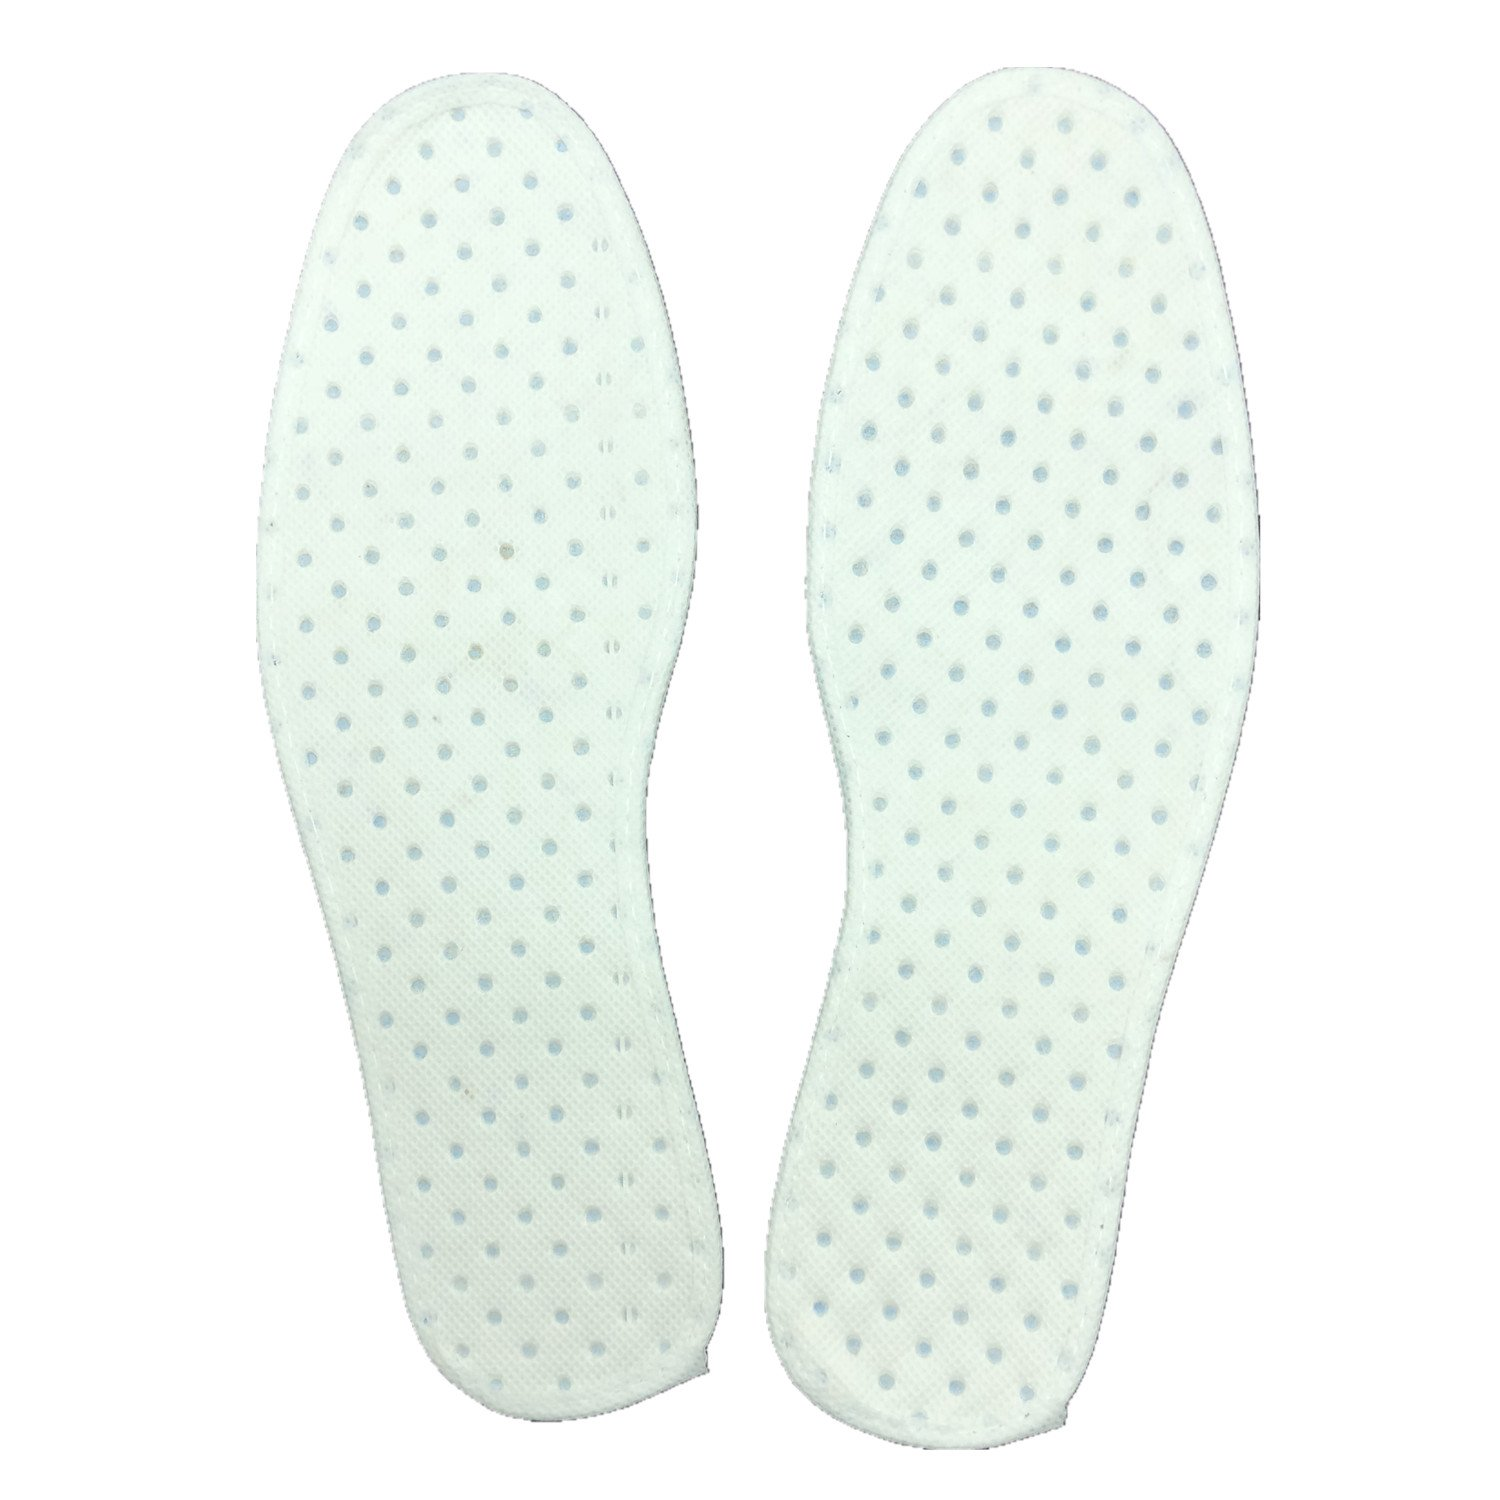 Disposable Breathable Insole Sweat-absorbent Shoe Pads,Pack of 5 Pairs by BIFINI (Image #1)